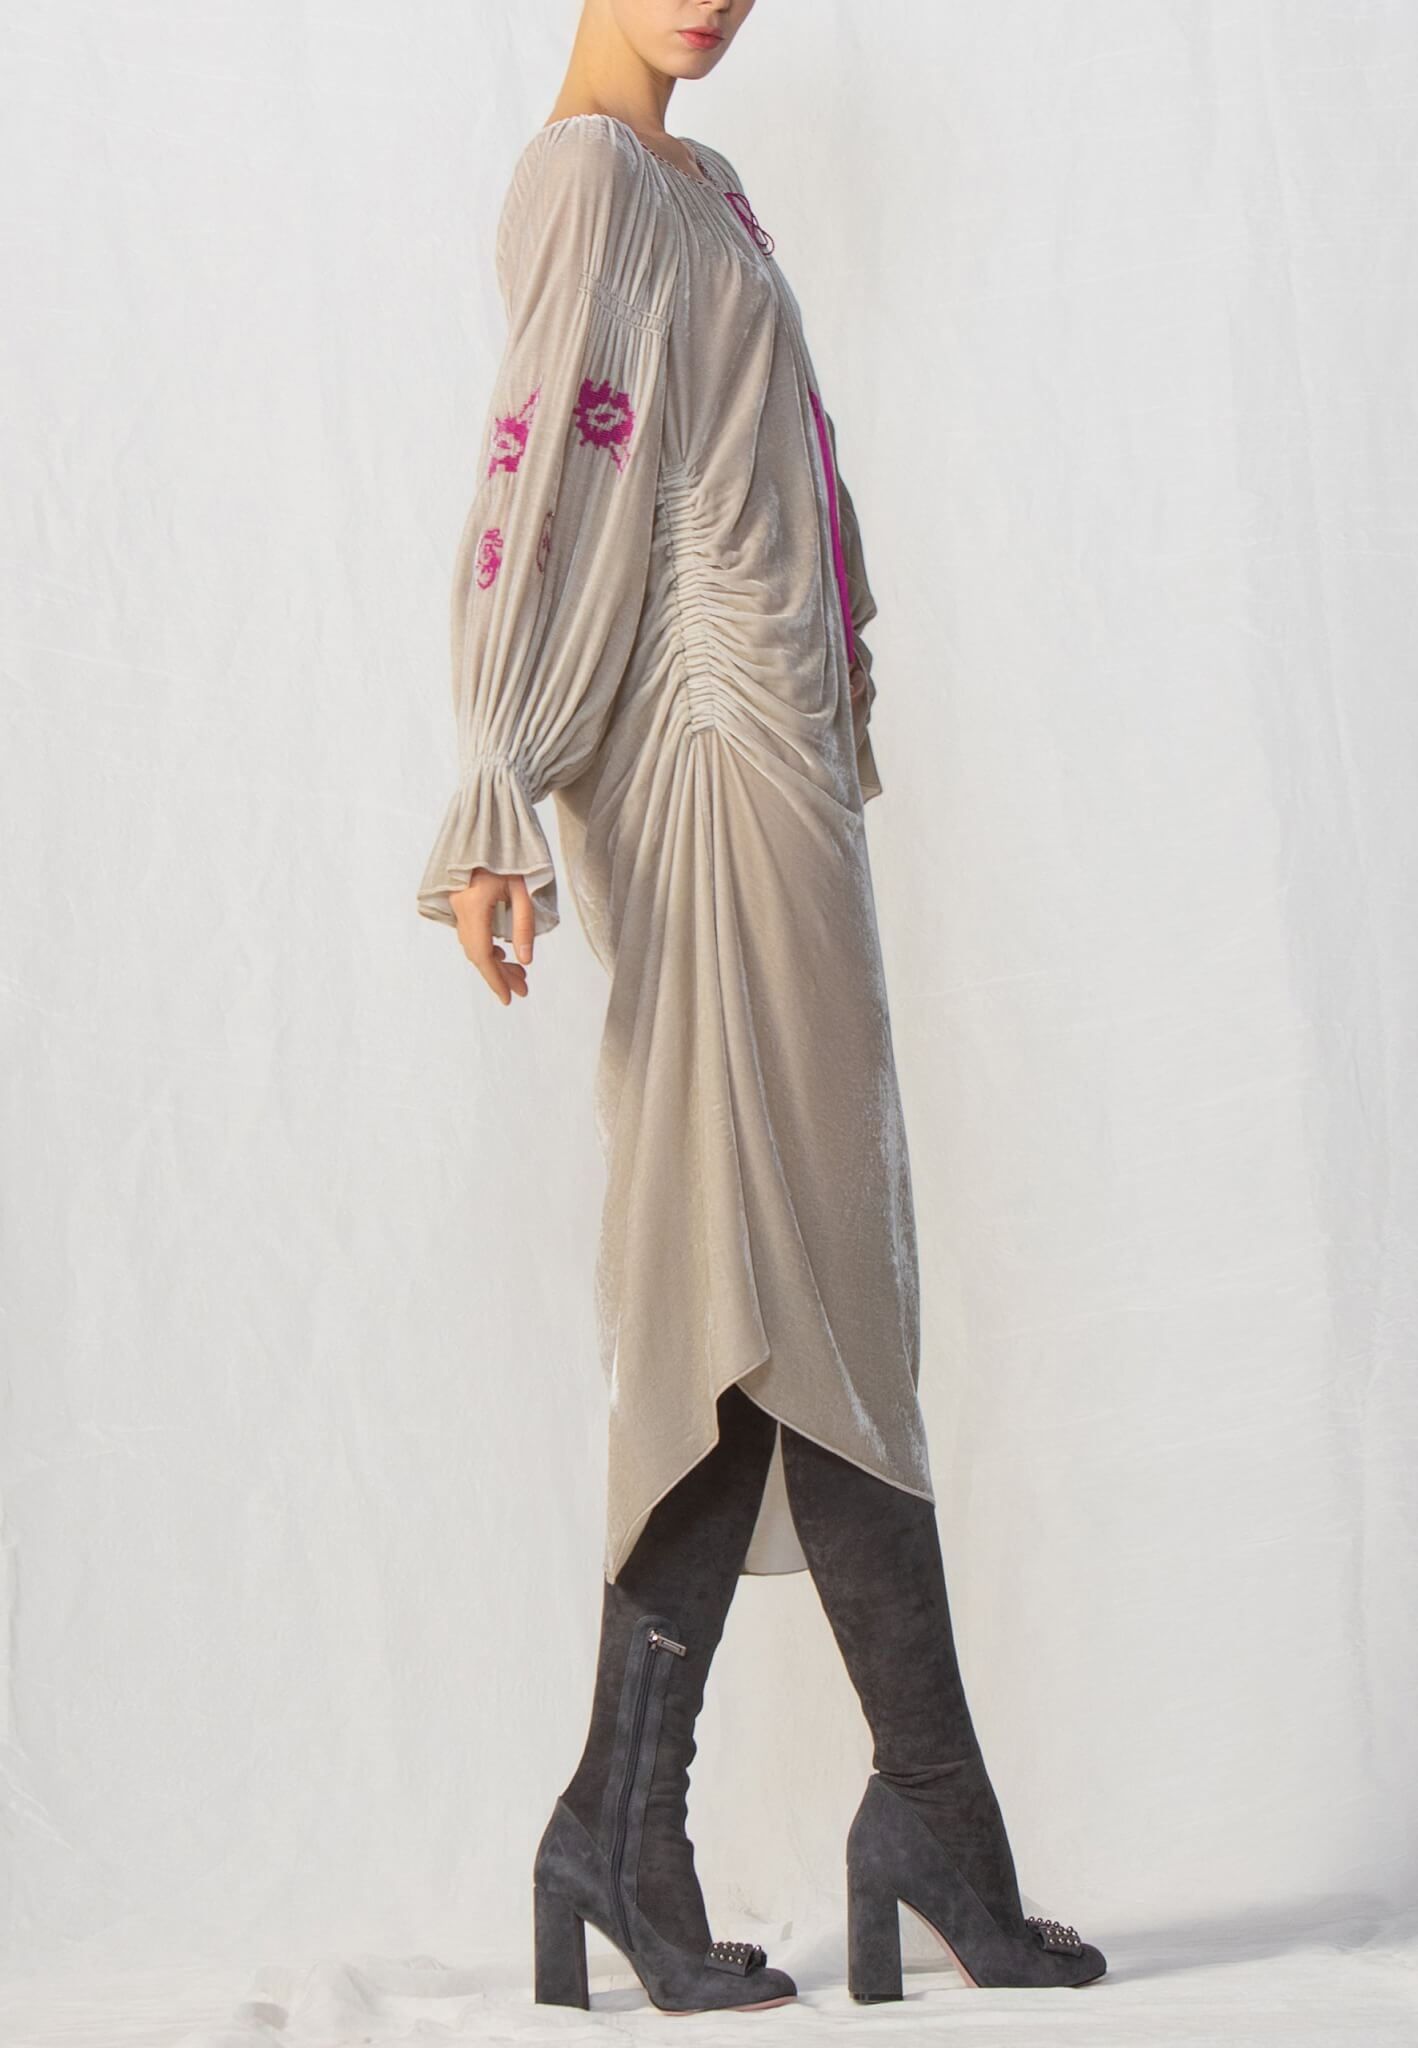 Beige velour dress with embroidery